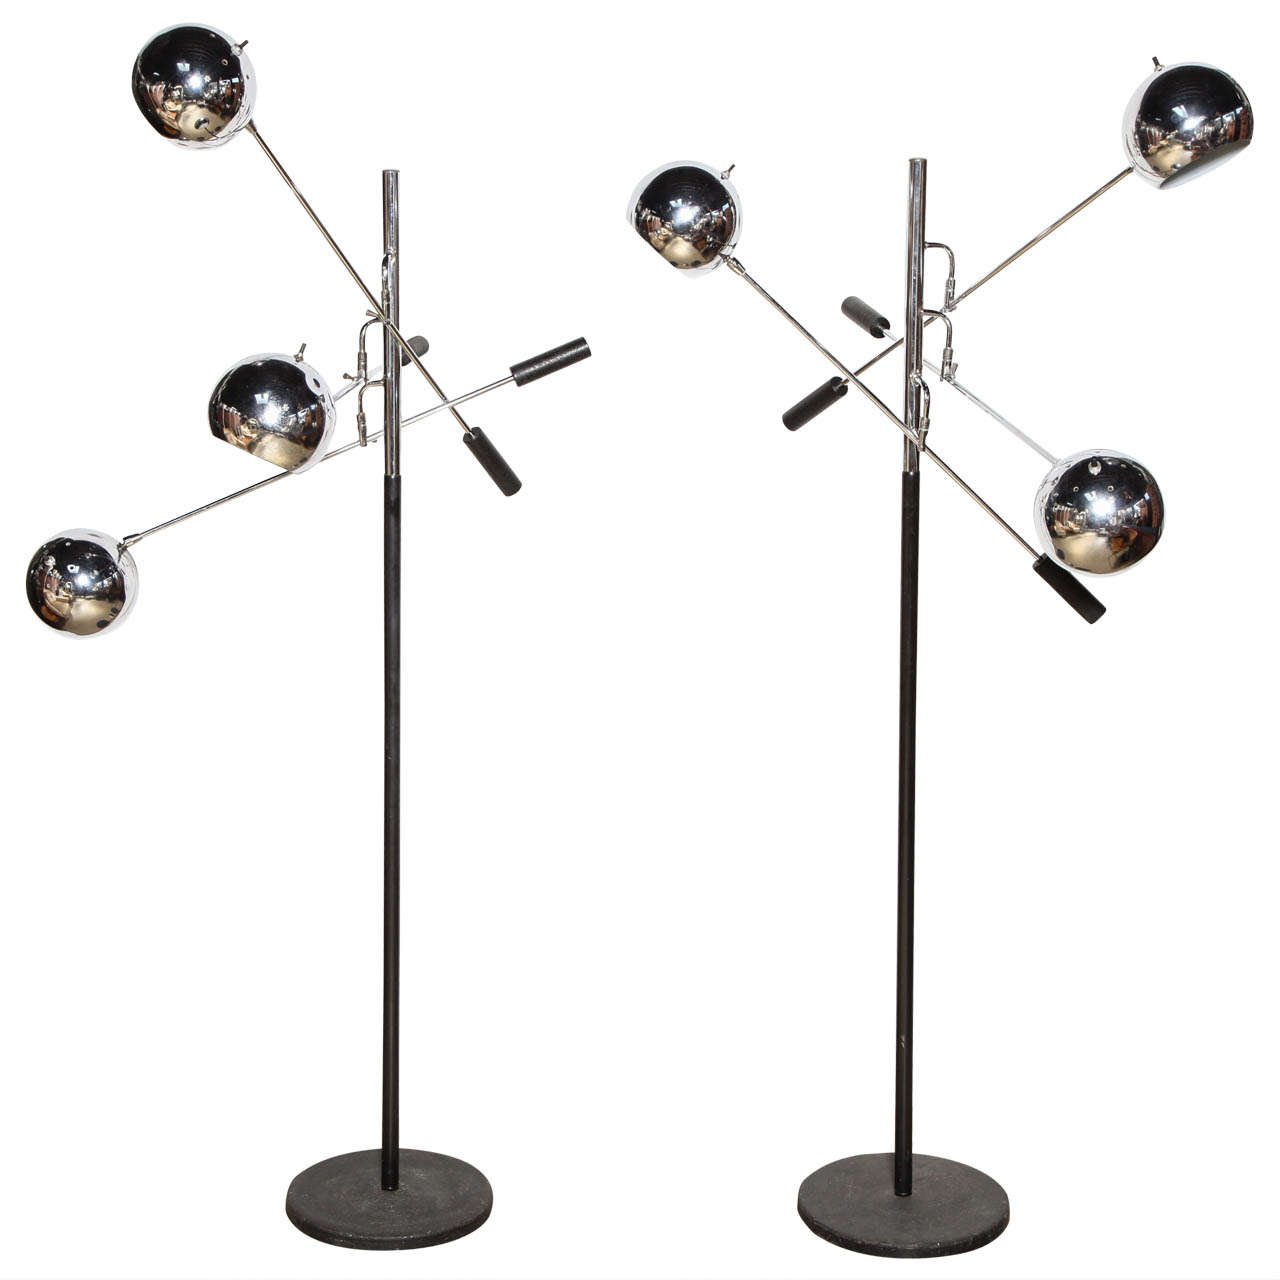 Pair of robert sonneman orbiter floor lamps at 1stdibs pair of robert sonneman orbiter floor lamps aloadofball Images